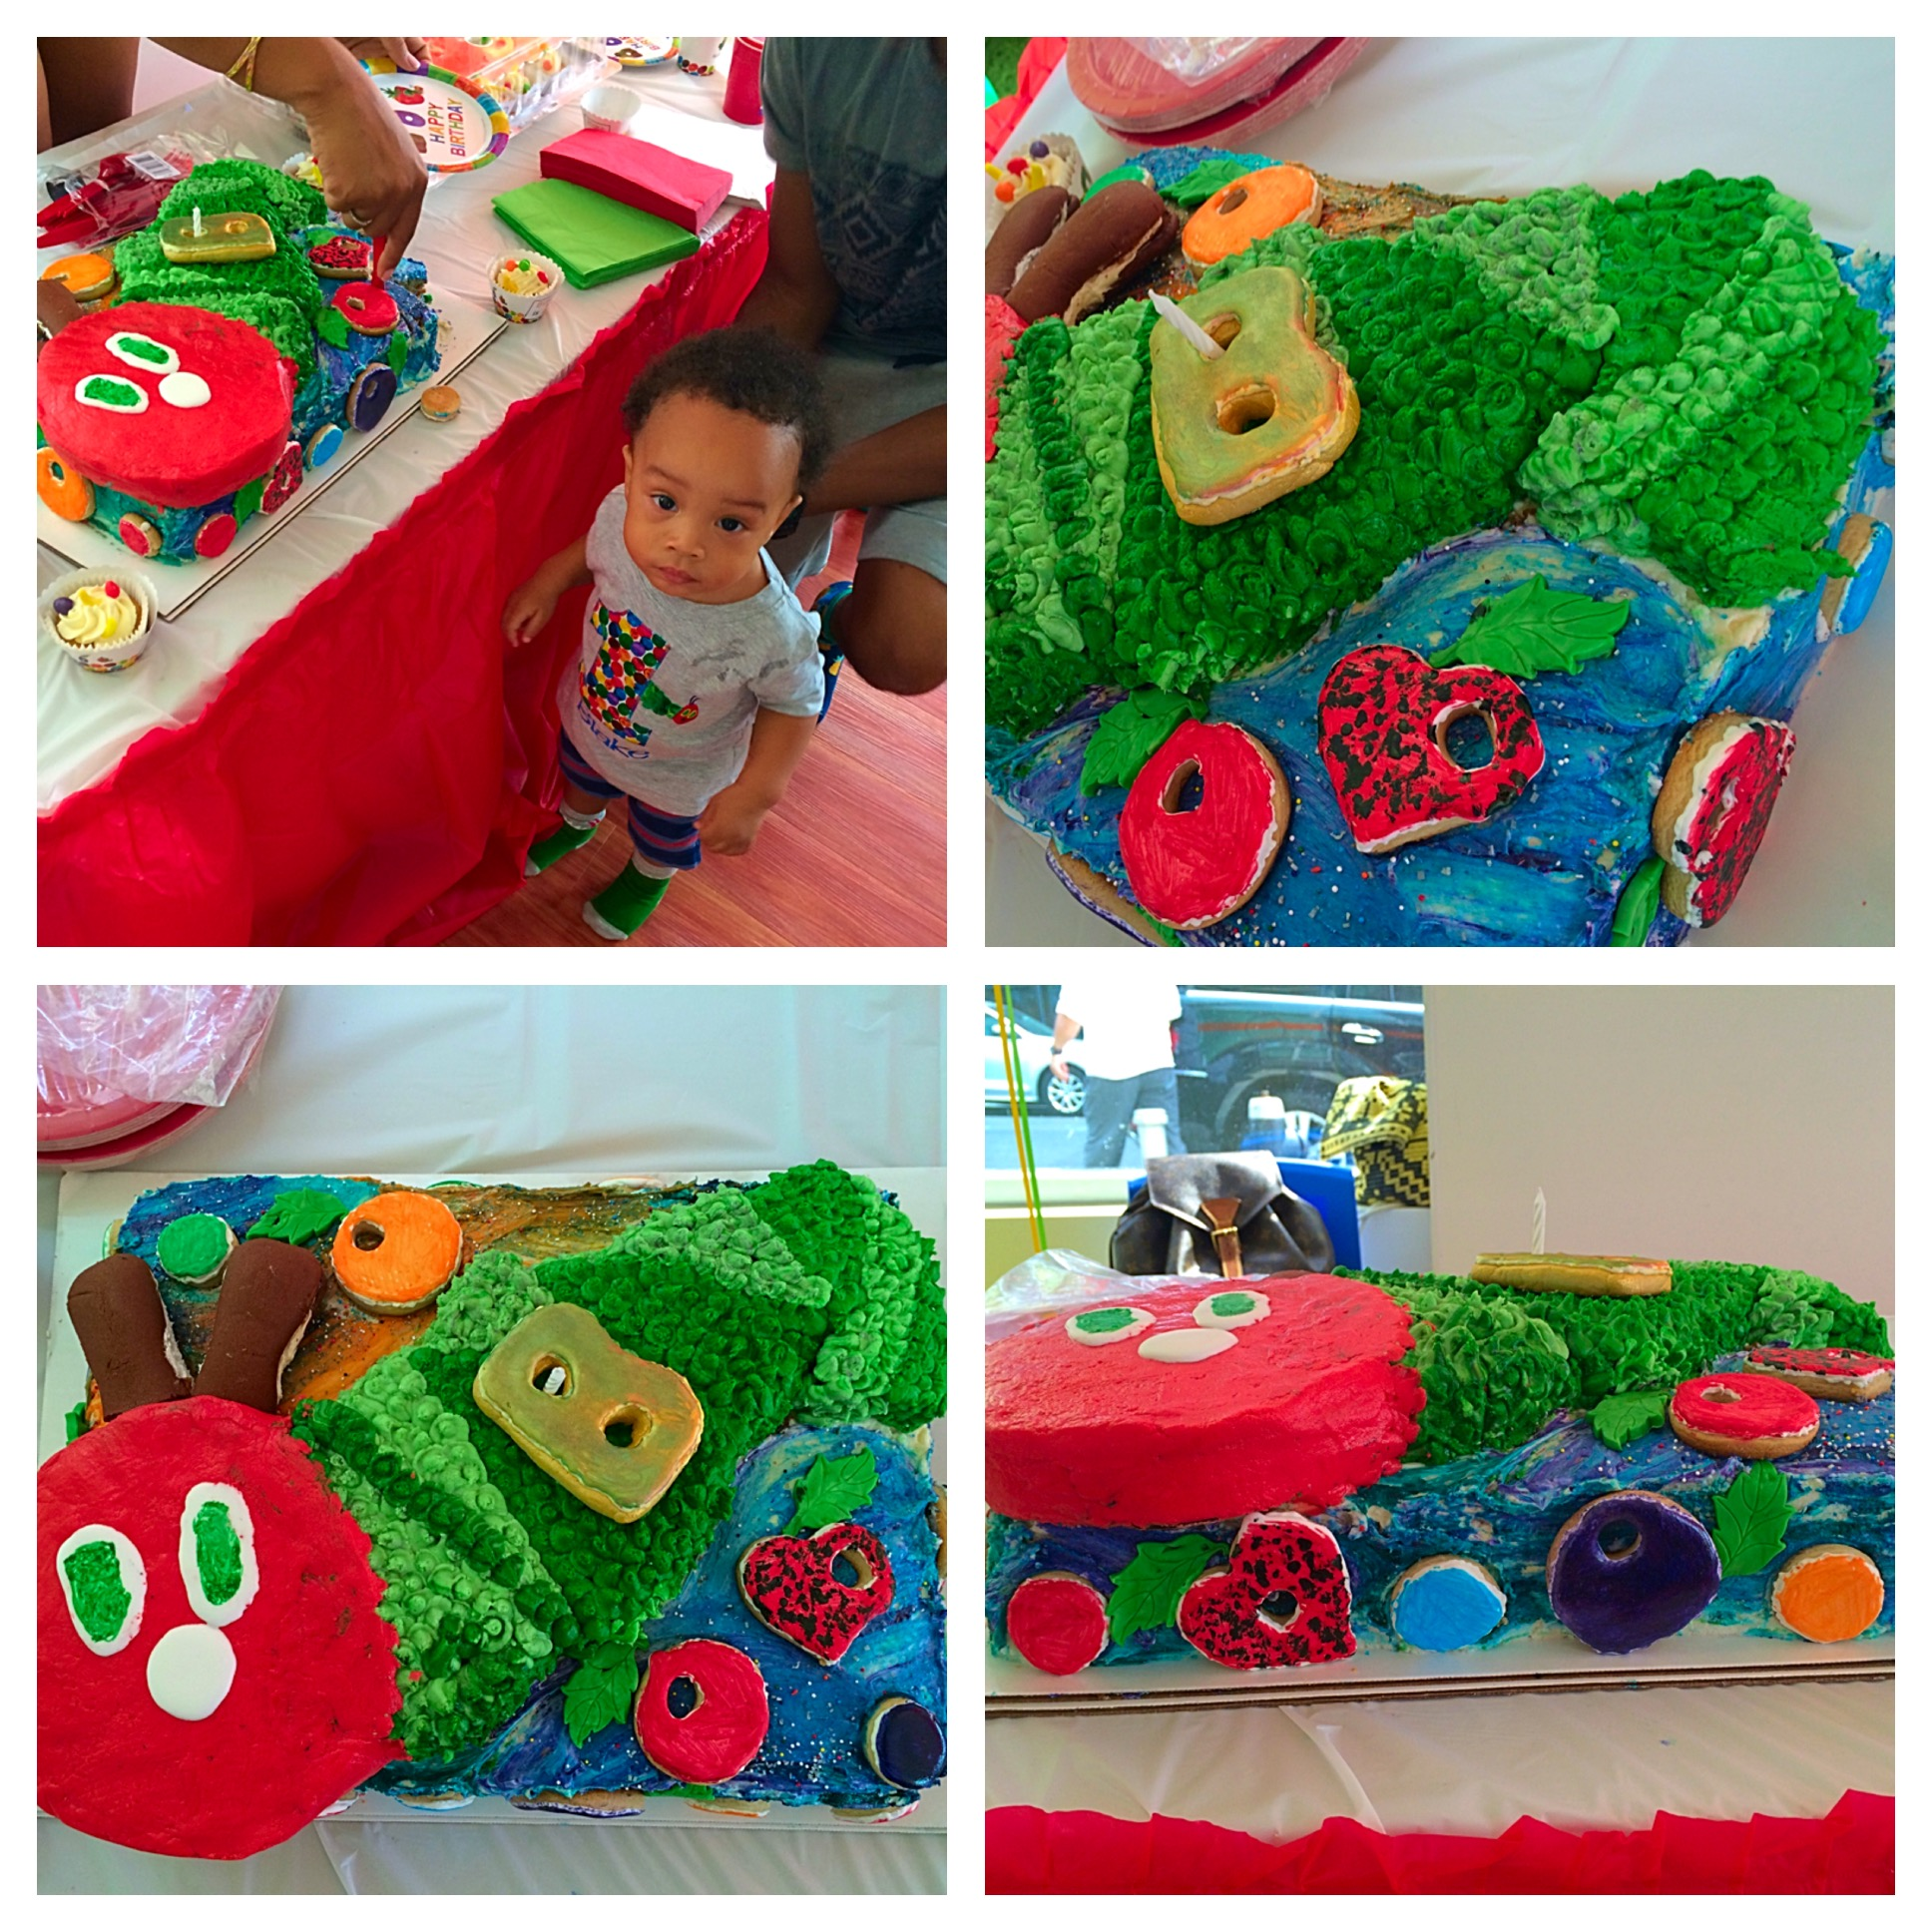 Custom Hungry Caterpillar cake | 1/2 sheet cake, carved out Caterpillar, Letter B and Fruits made of sugar cookies, No all butter cream no fondant | $250